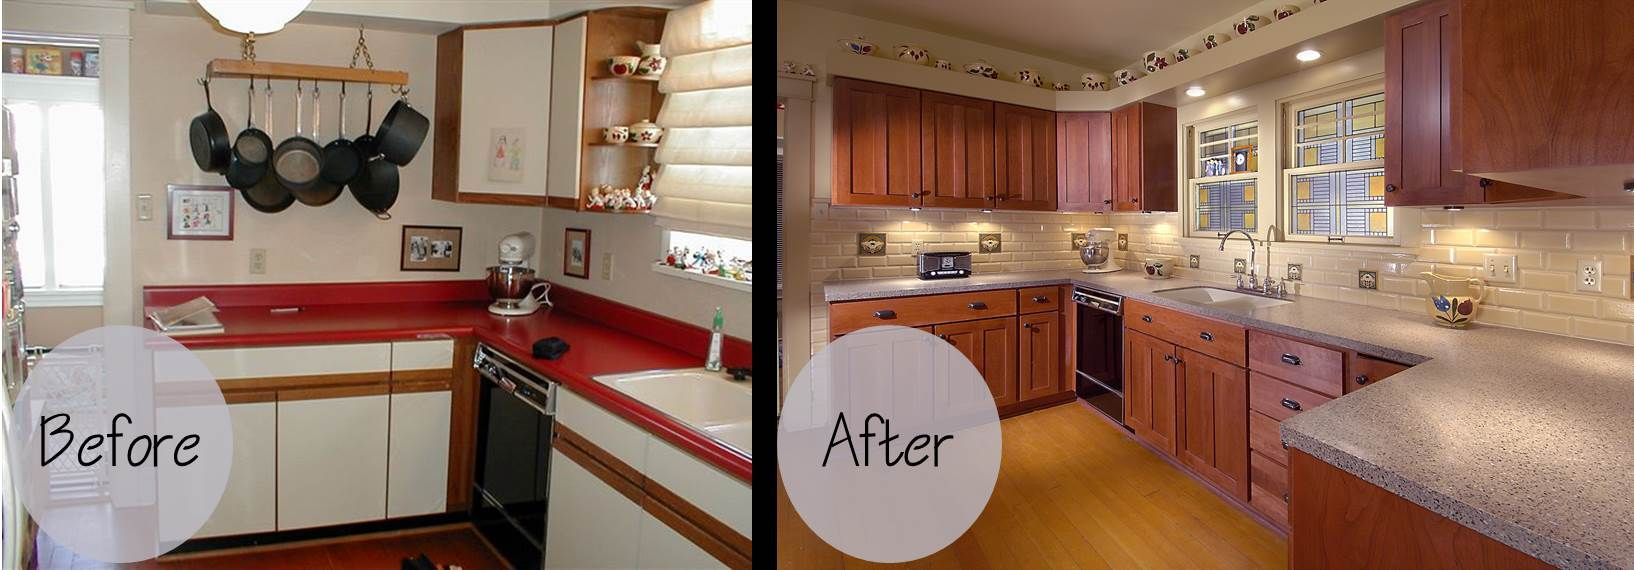 Kitchen Terrific Cabinets Reface Wonderful Refacing To Enhance The Look Of Your Room